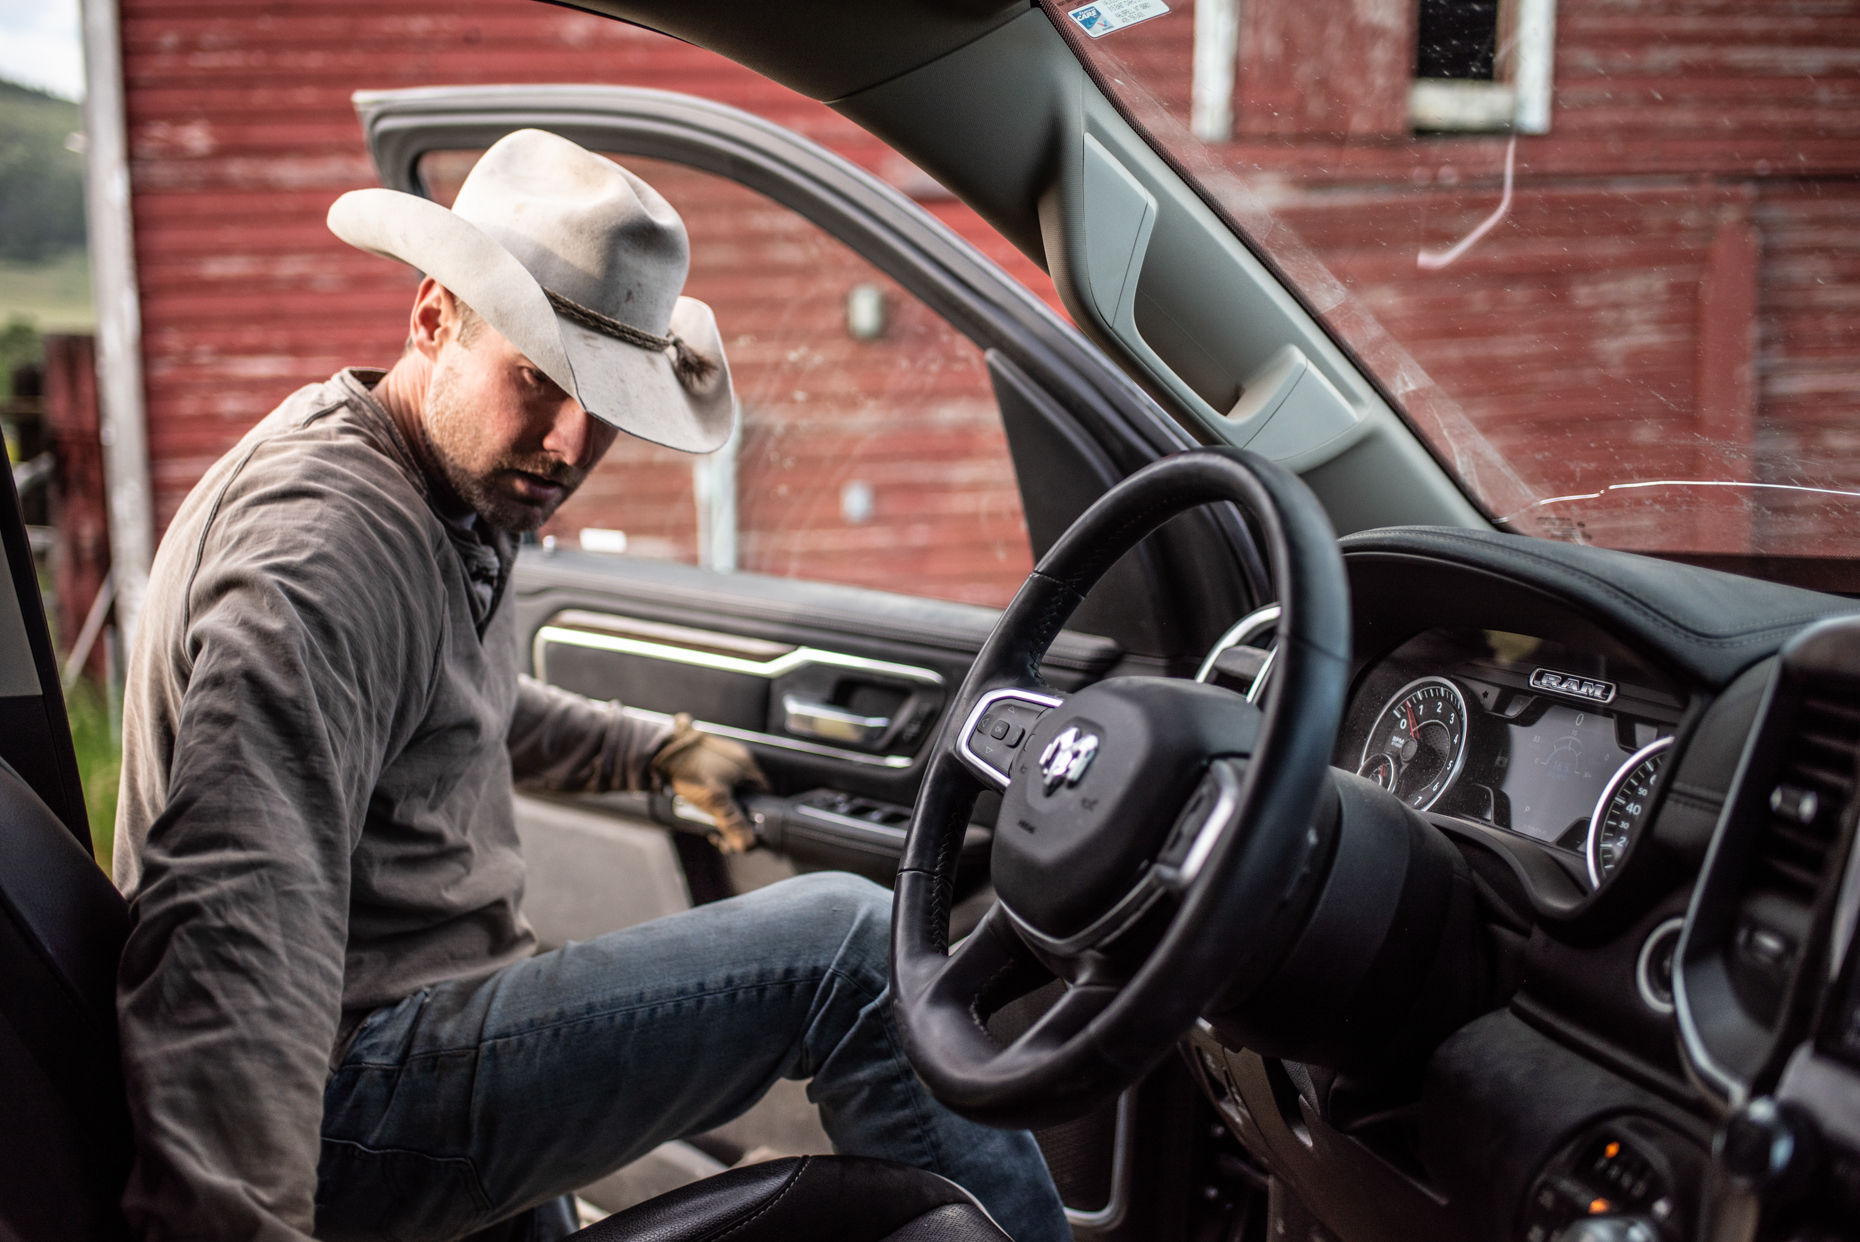 Rancher getting in Ram truck. Isaac Miller Photography  | Agriculture & Industry Photographer  |  Commercial & Editorial photography  |   Missoula + San Antonio